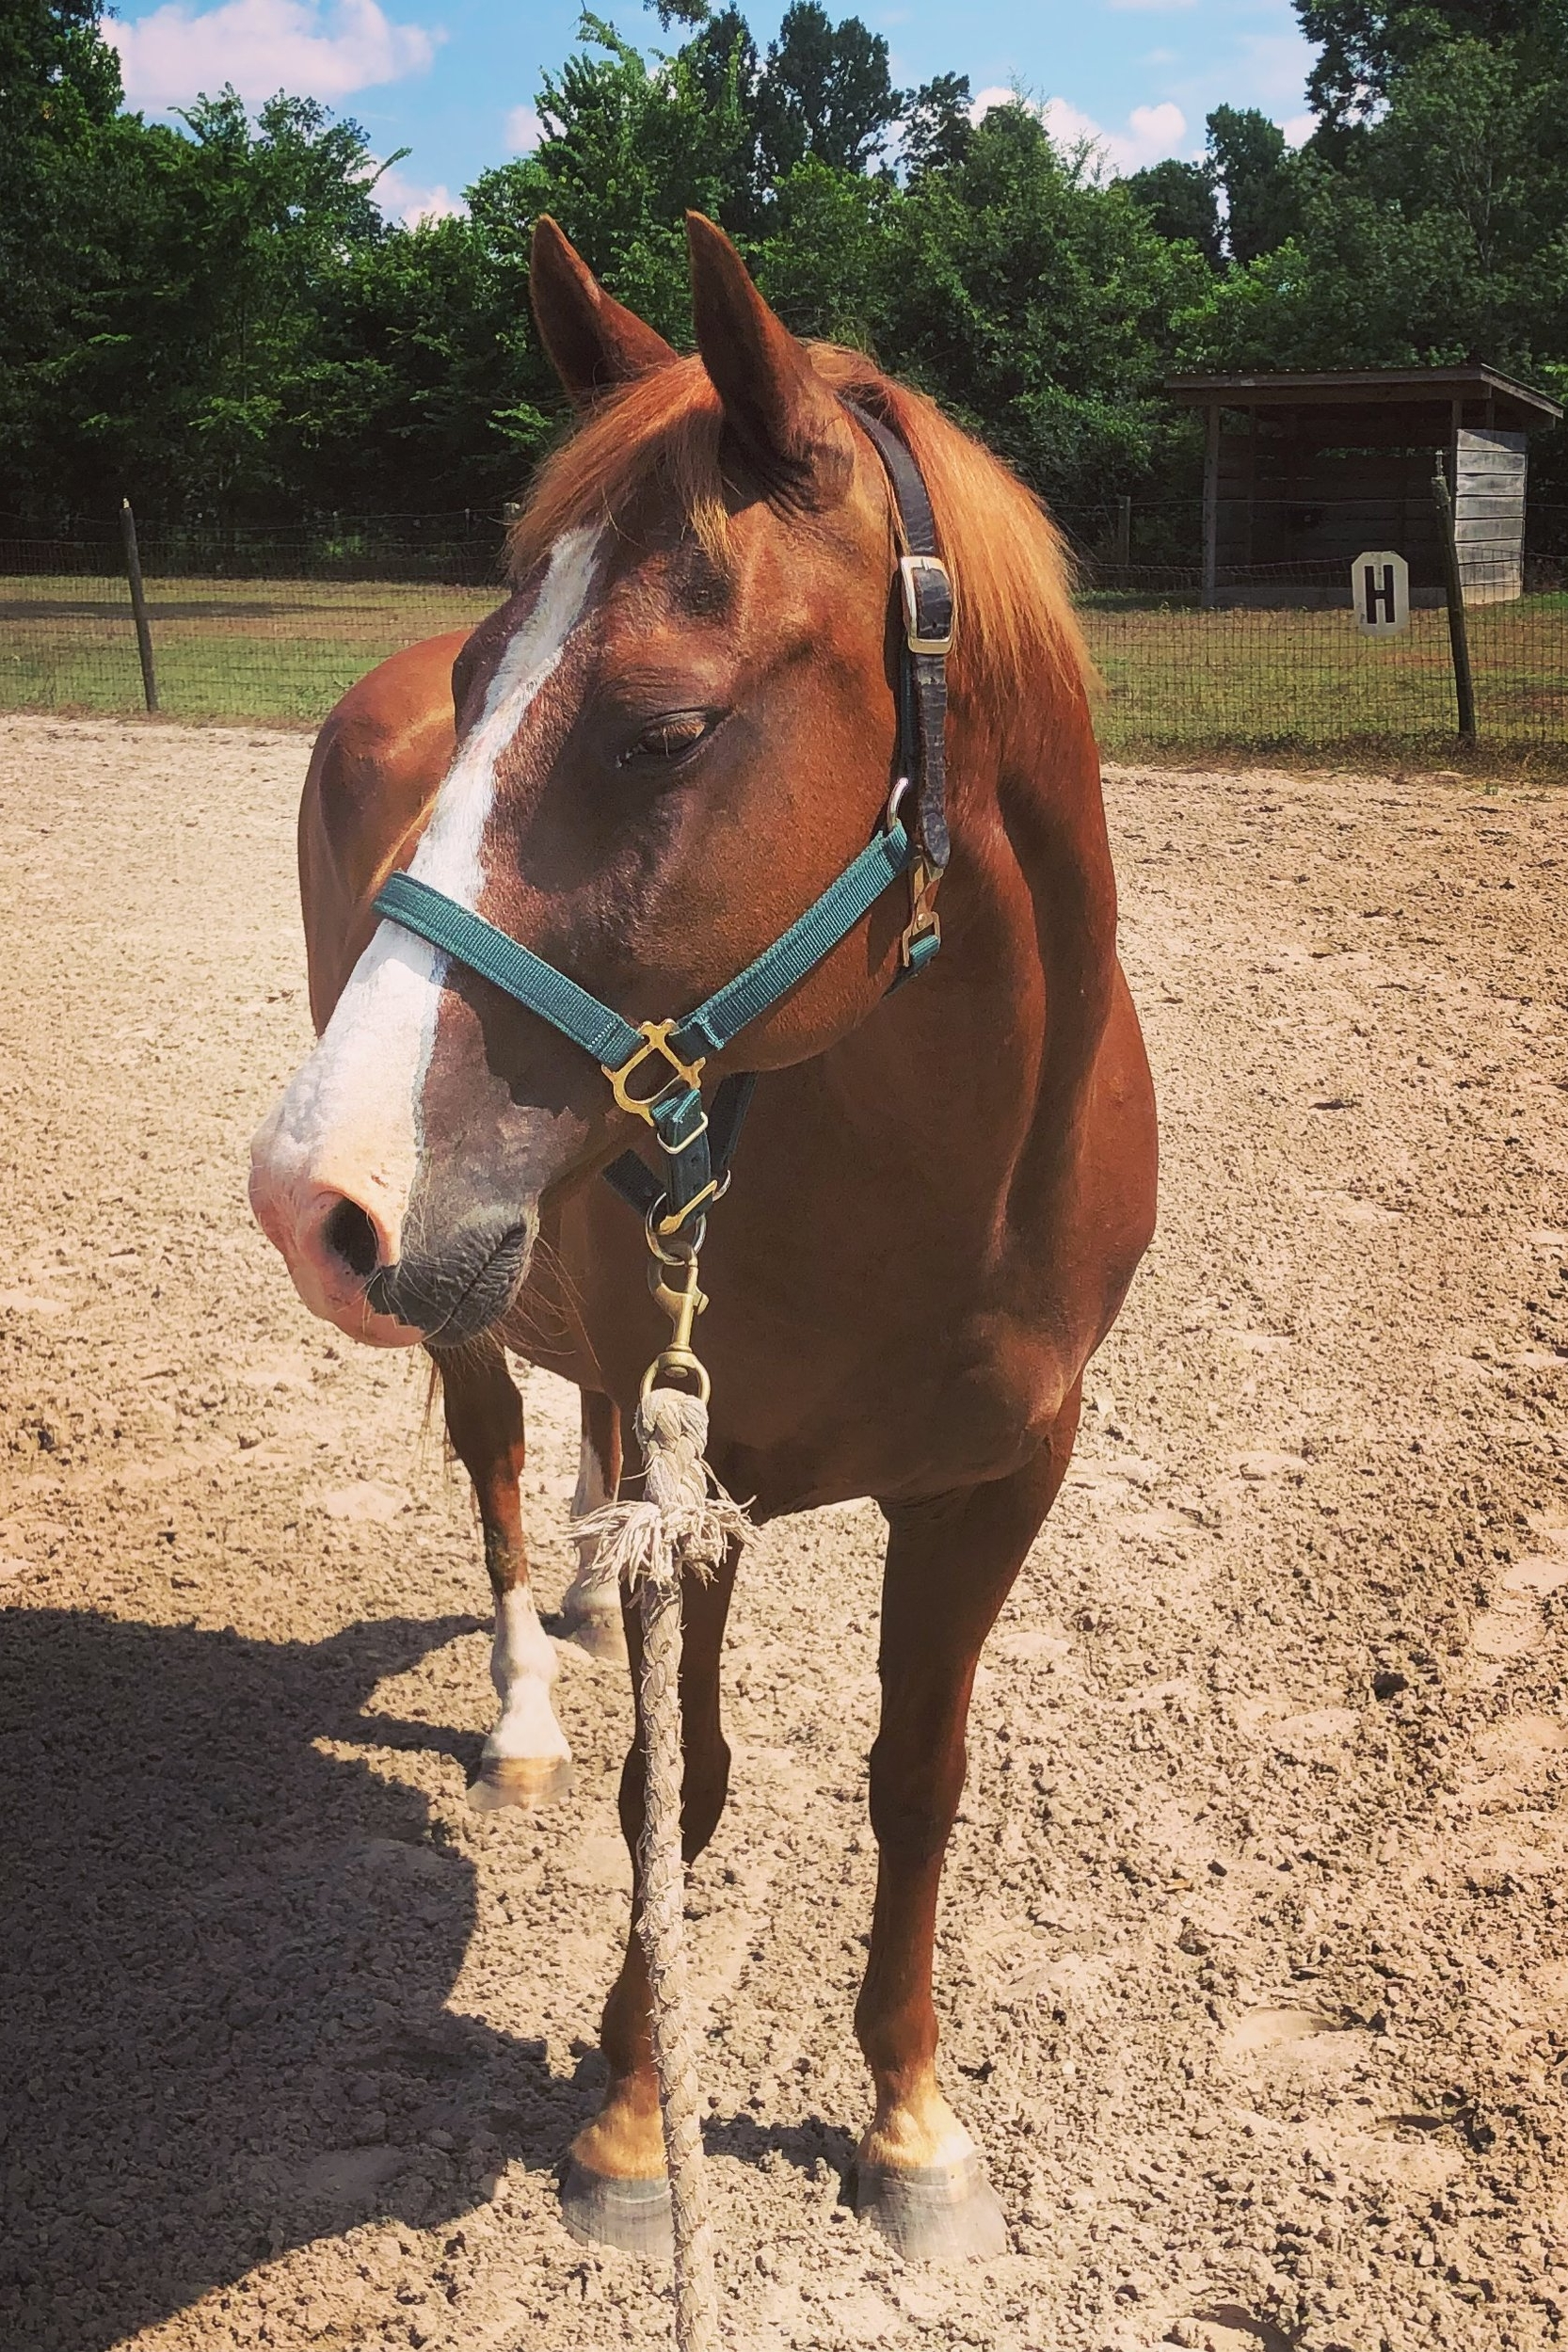 Red - Red is a small Quarter Horse gelding being leased to GaitWay by Bailey Gentile. Red use to be a professional on the barrel racing circuit with his owner. While Bailey is attending nursing school, Red will get to take on riders of all sizes and help them become more independent and confident. Don't let his small size fool you! Red has a big heart and a big personality that makes all his riders believe they can do anything!